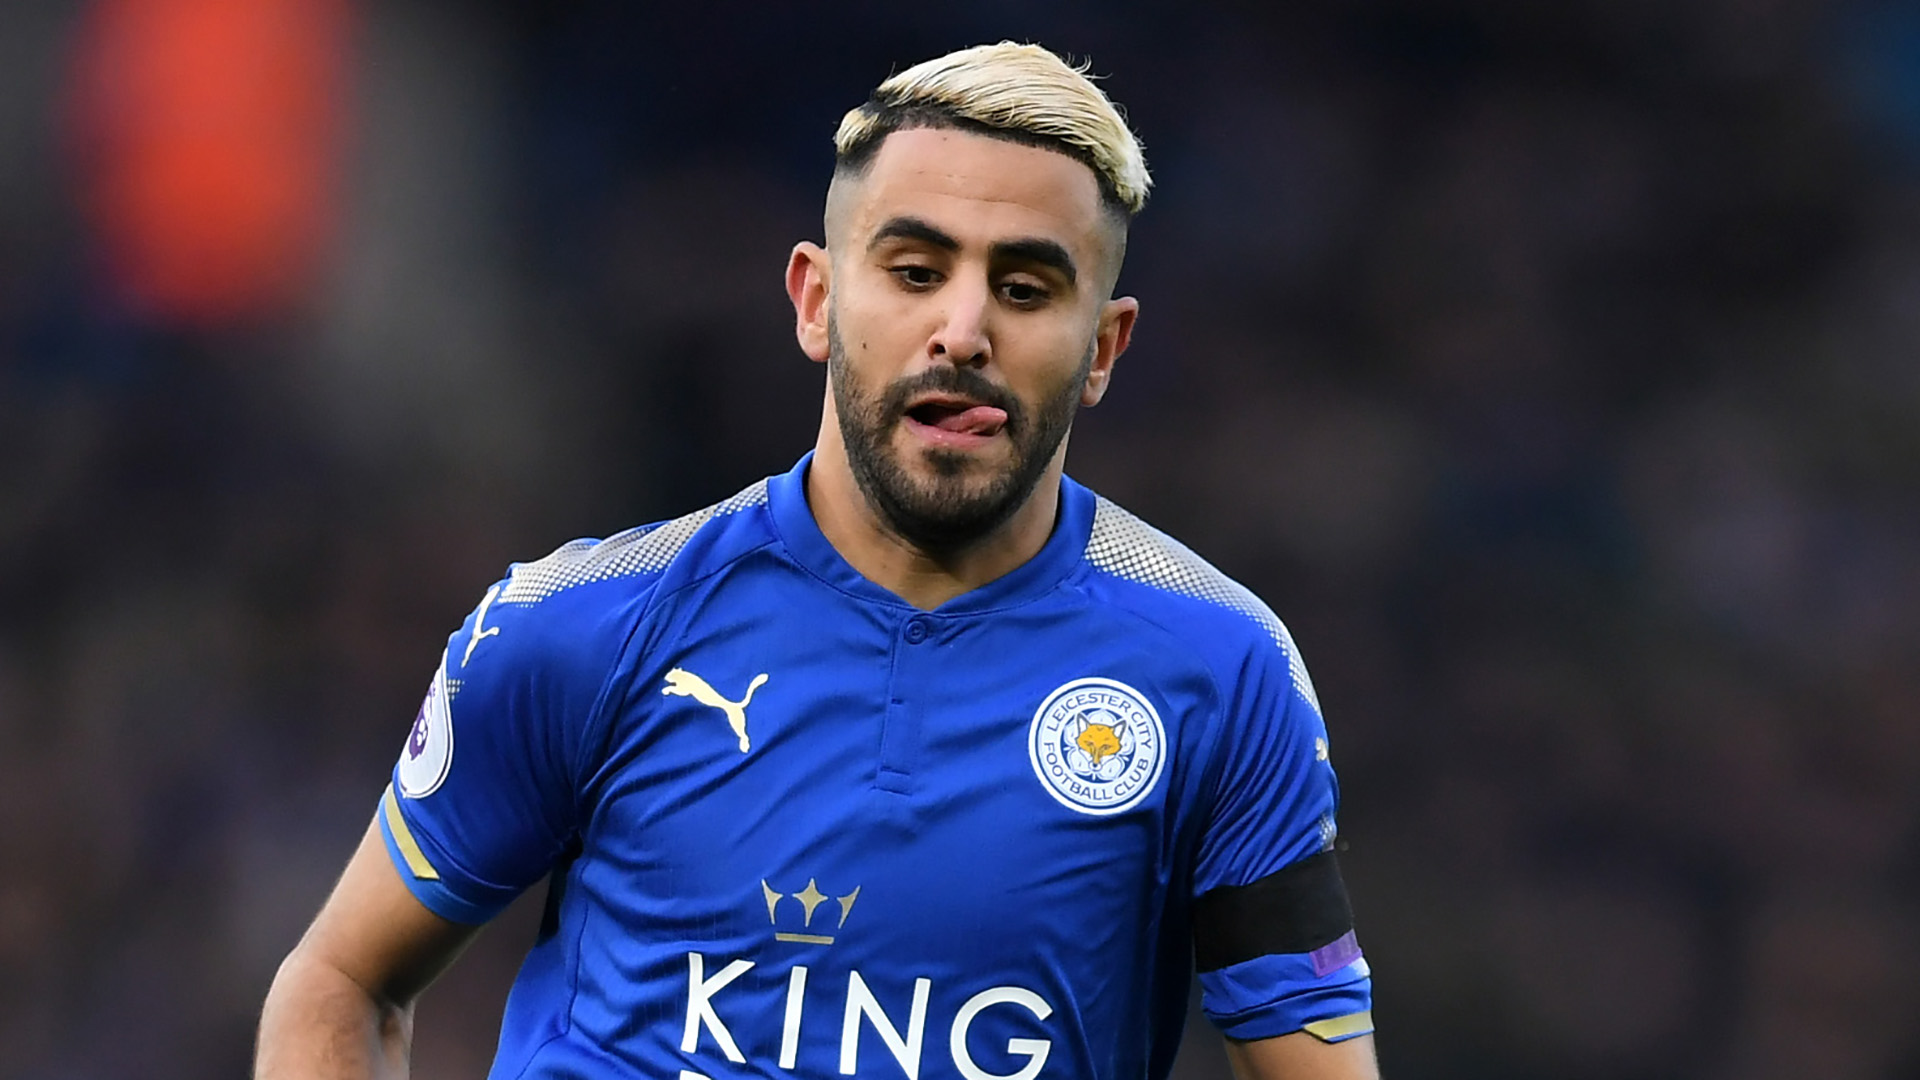 riyad mahrez leicester city watford 8537e9ly87ff1m3oxg3ra3c2o - ROUND-UP of 30/1/2018 TRANSFER NEWS, DONE DEALS AND RUMOURS